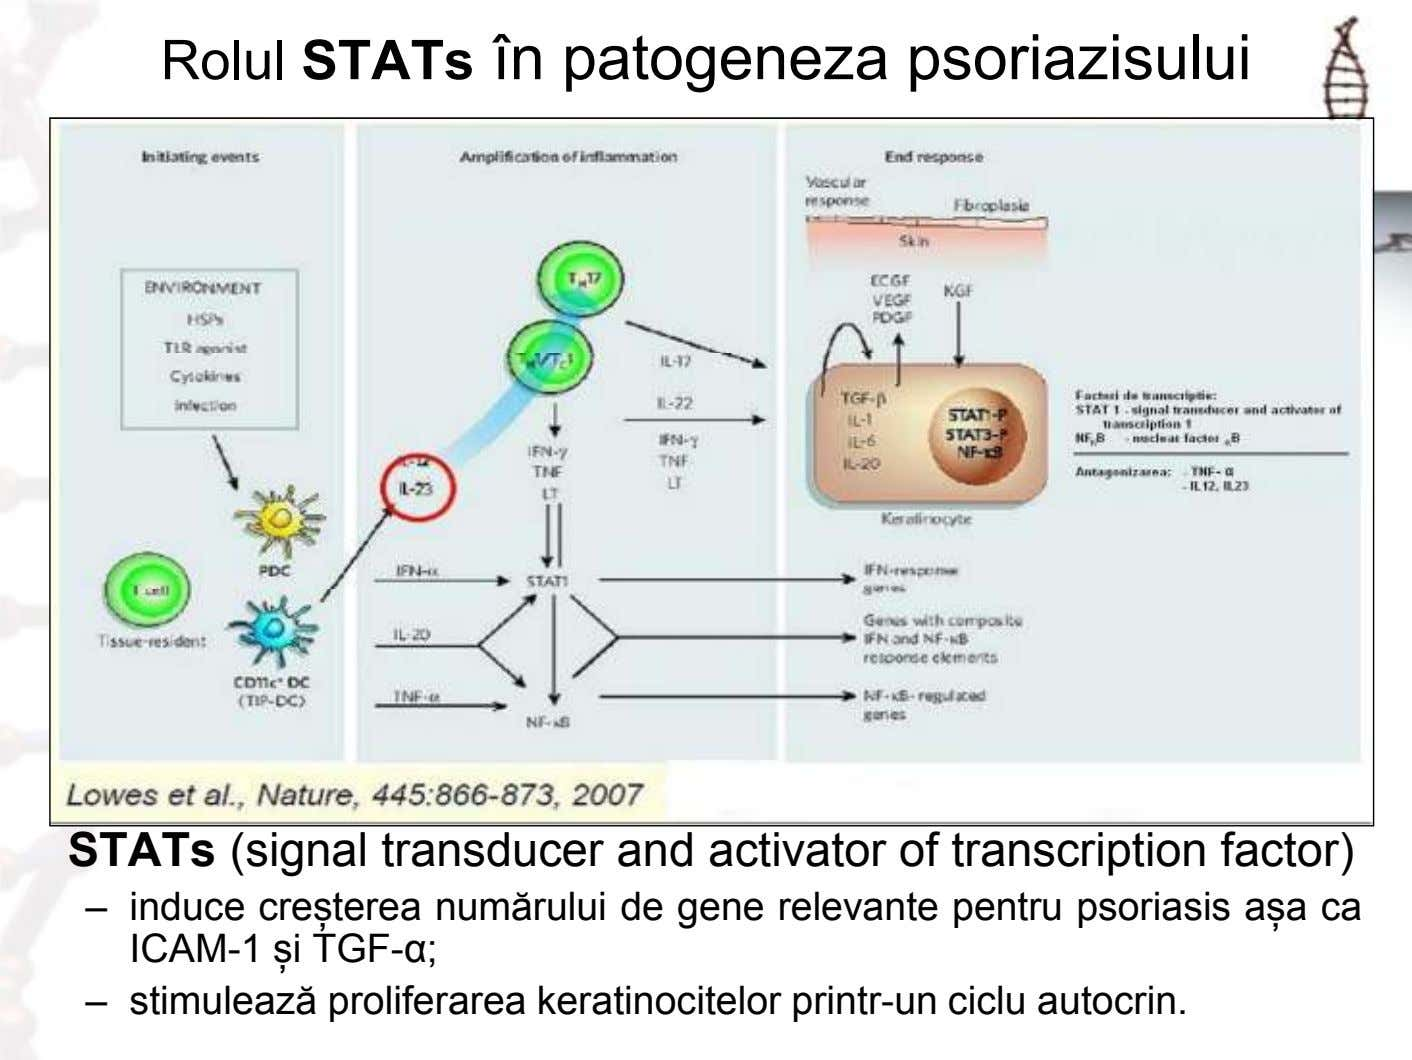 Rolul STATs în patogeneza psoriazisului STATs (signal transducer and activator of transcription factor) – induce